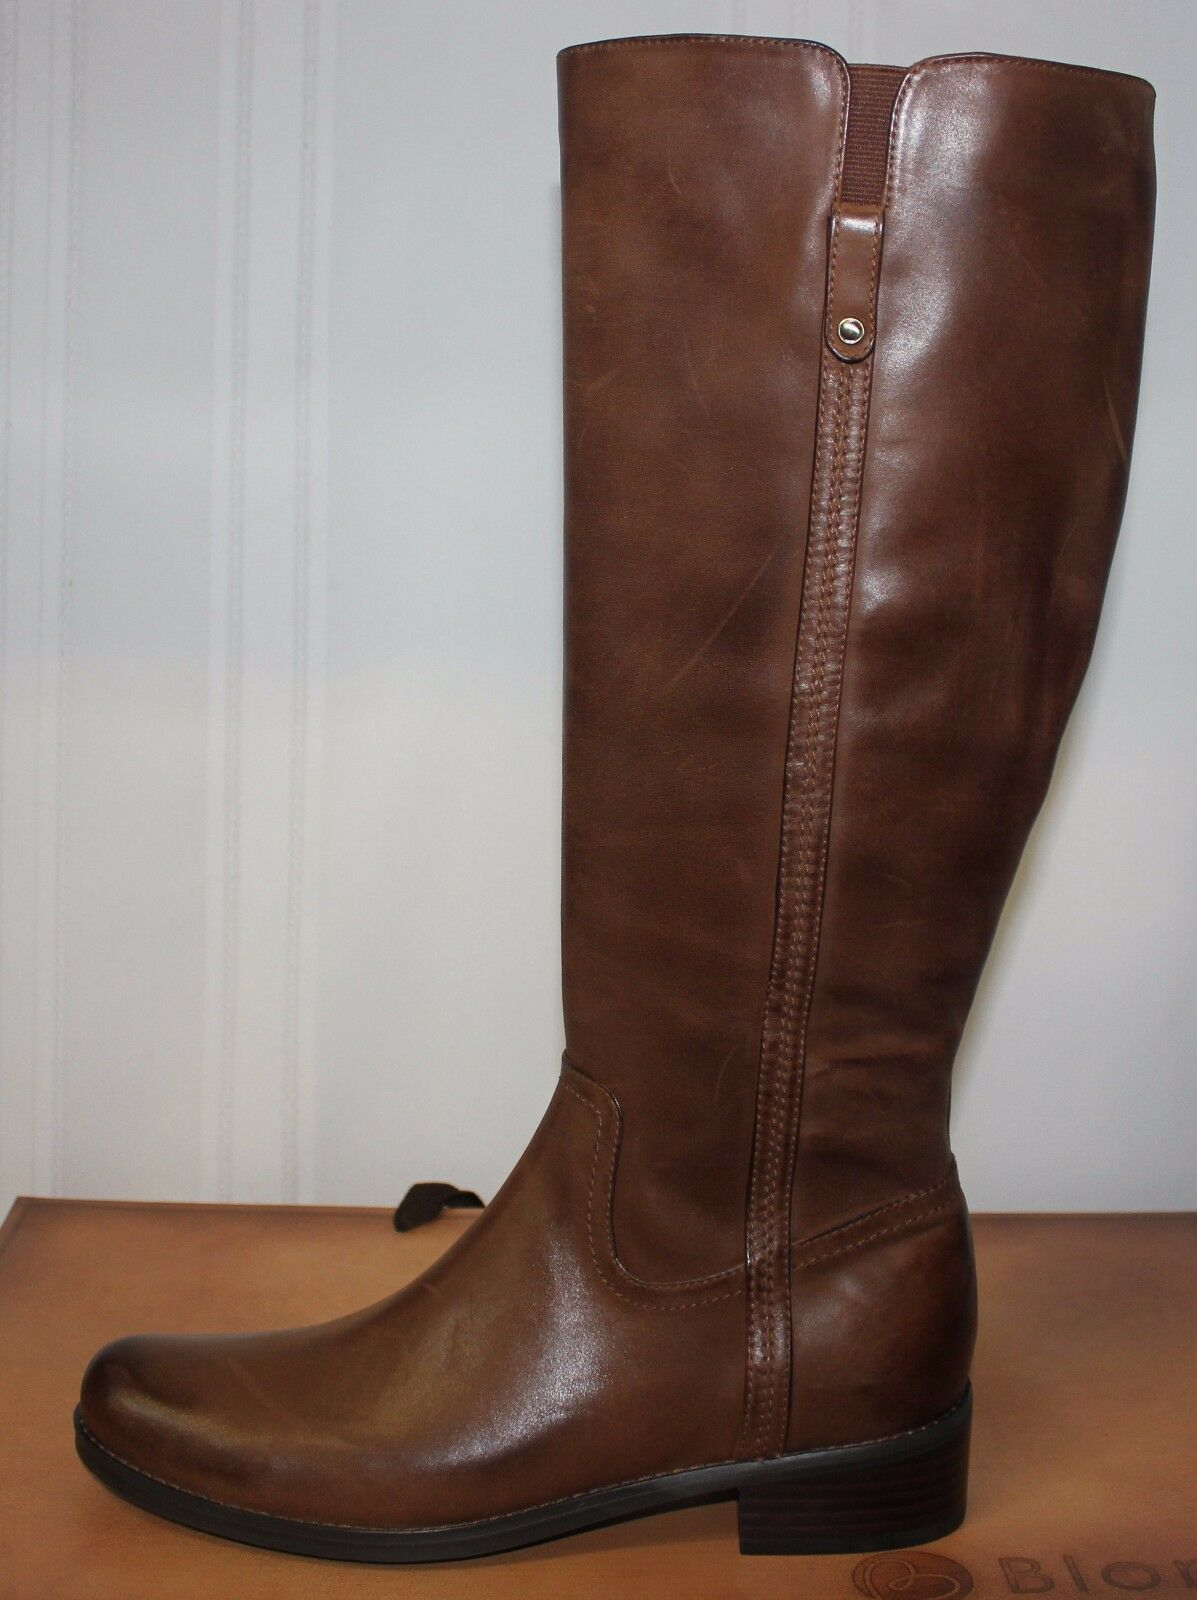 Blondo Women's Vanylle Boots Waterproof Honey Brown Brushed Brushed Brushed Leather New a34068